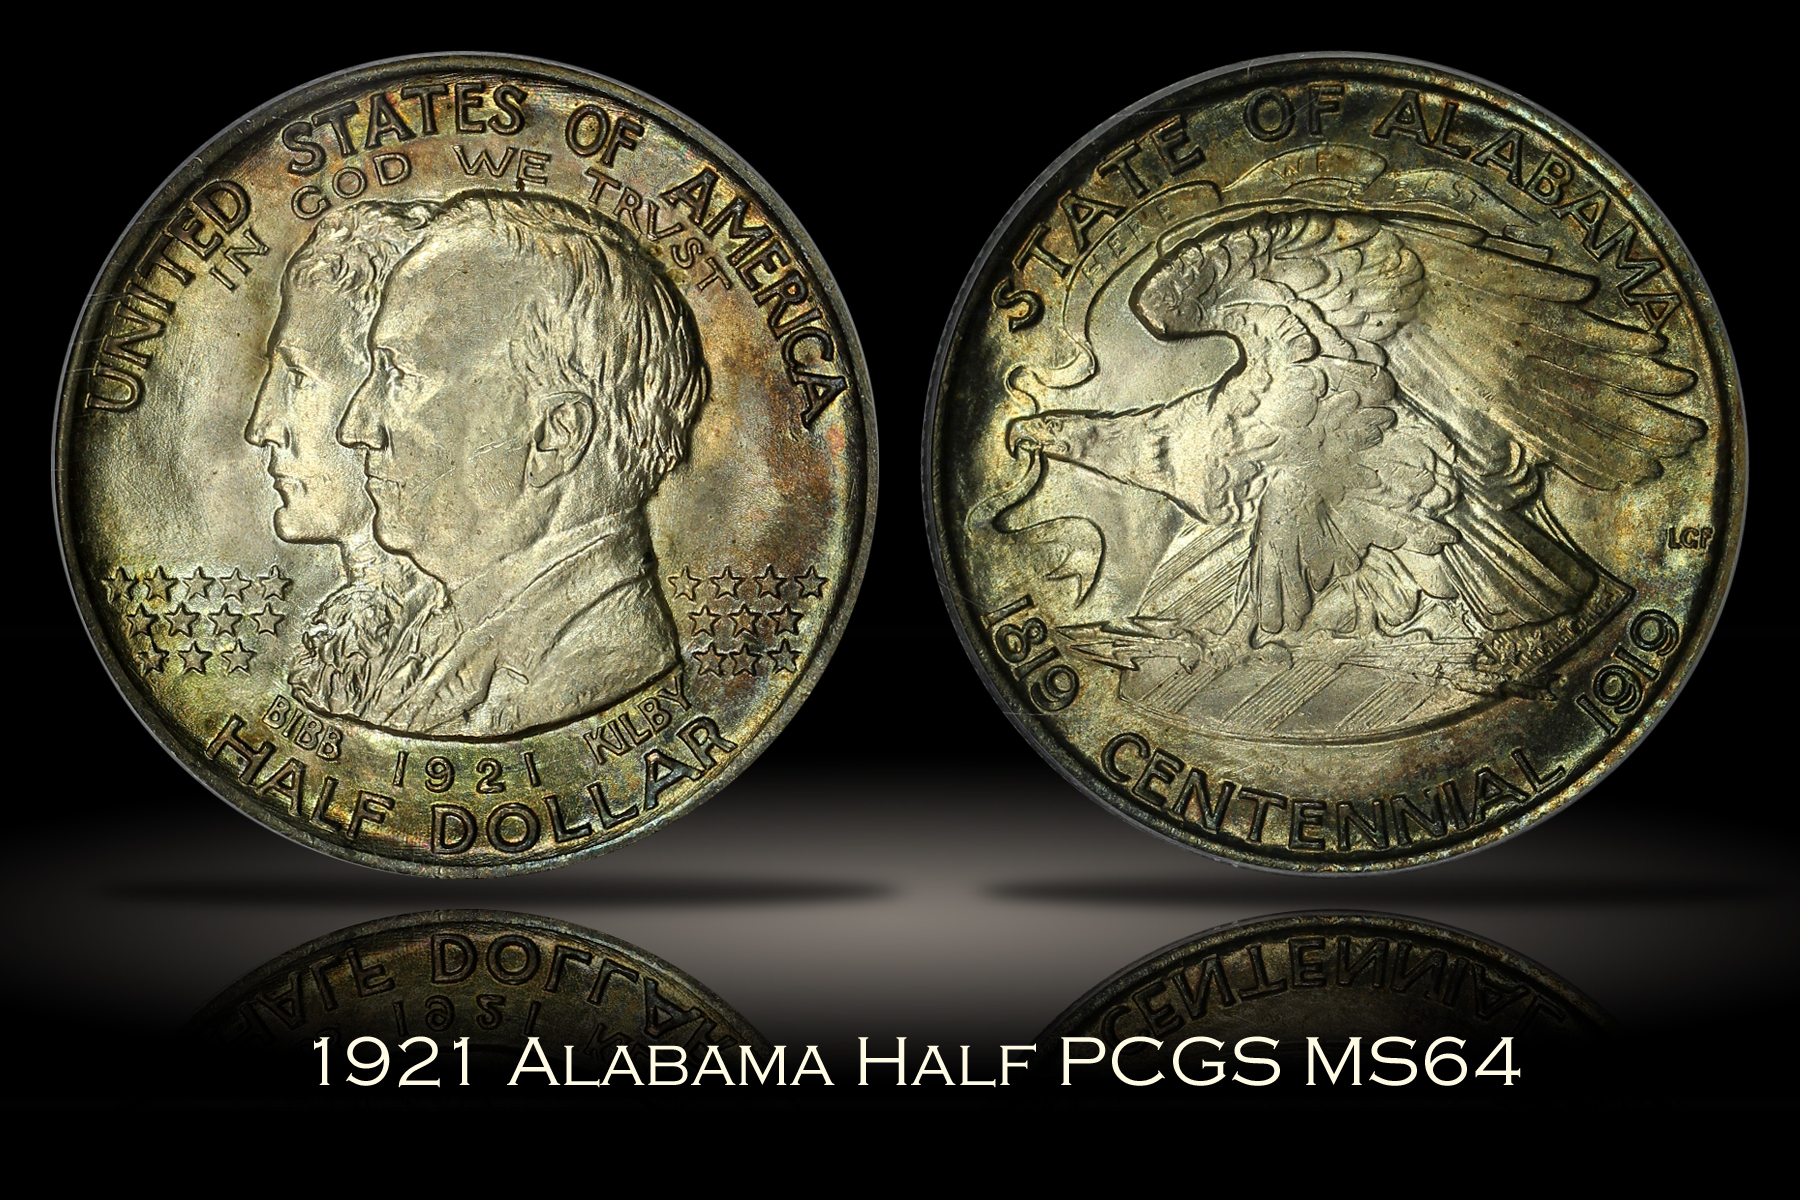 1921 Alabama Half PCGS MS64